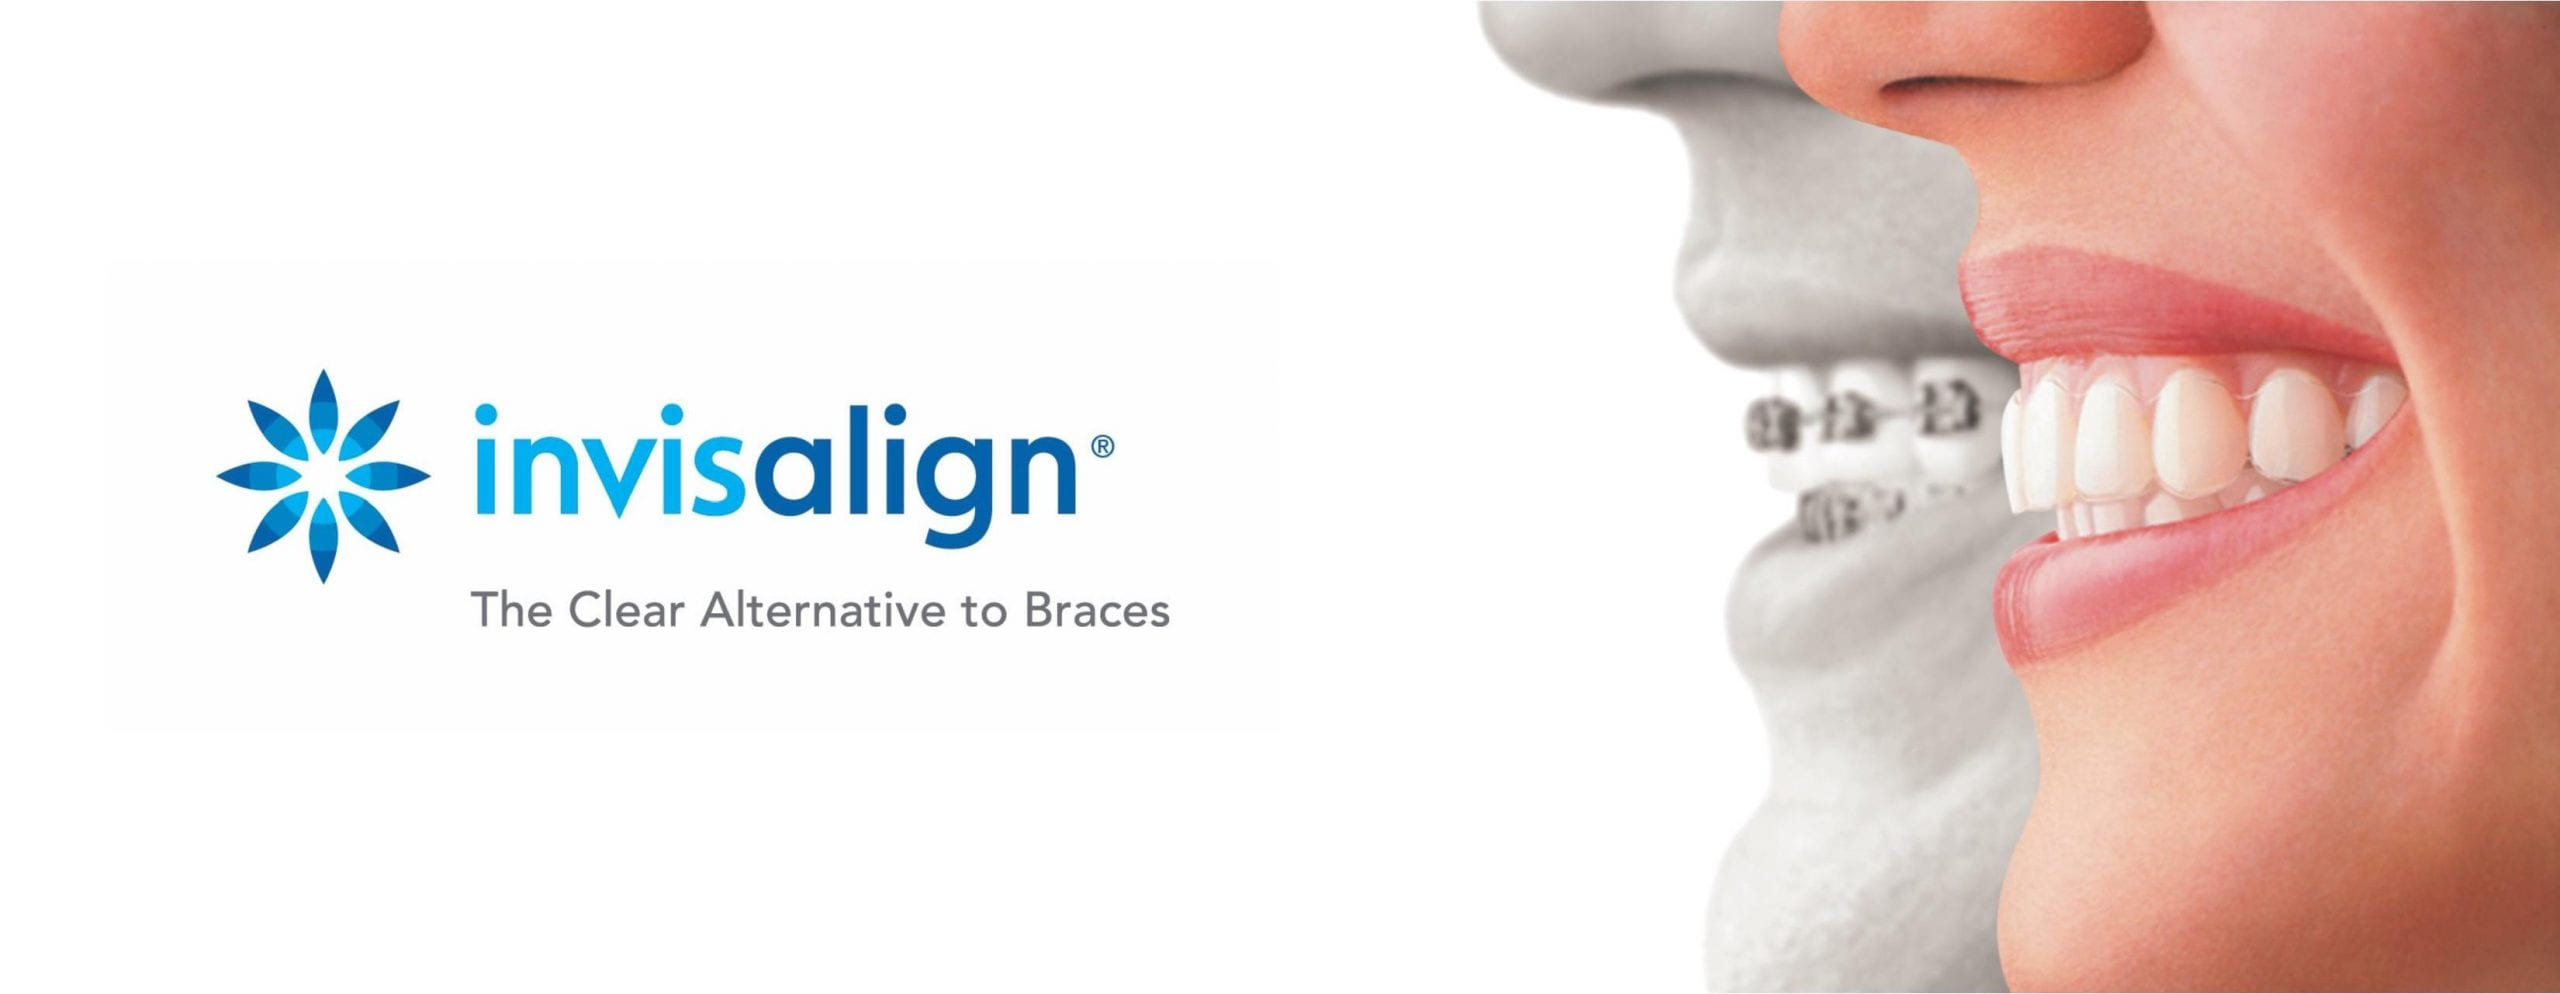 Looking at invisalign braces cost and options